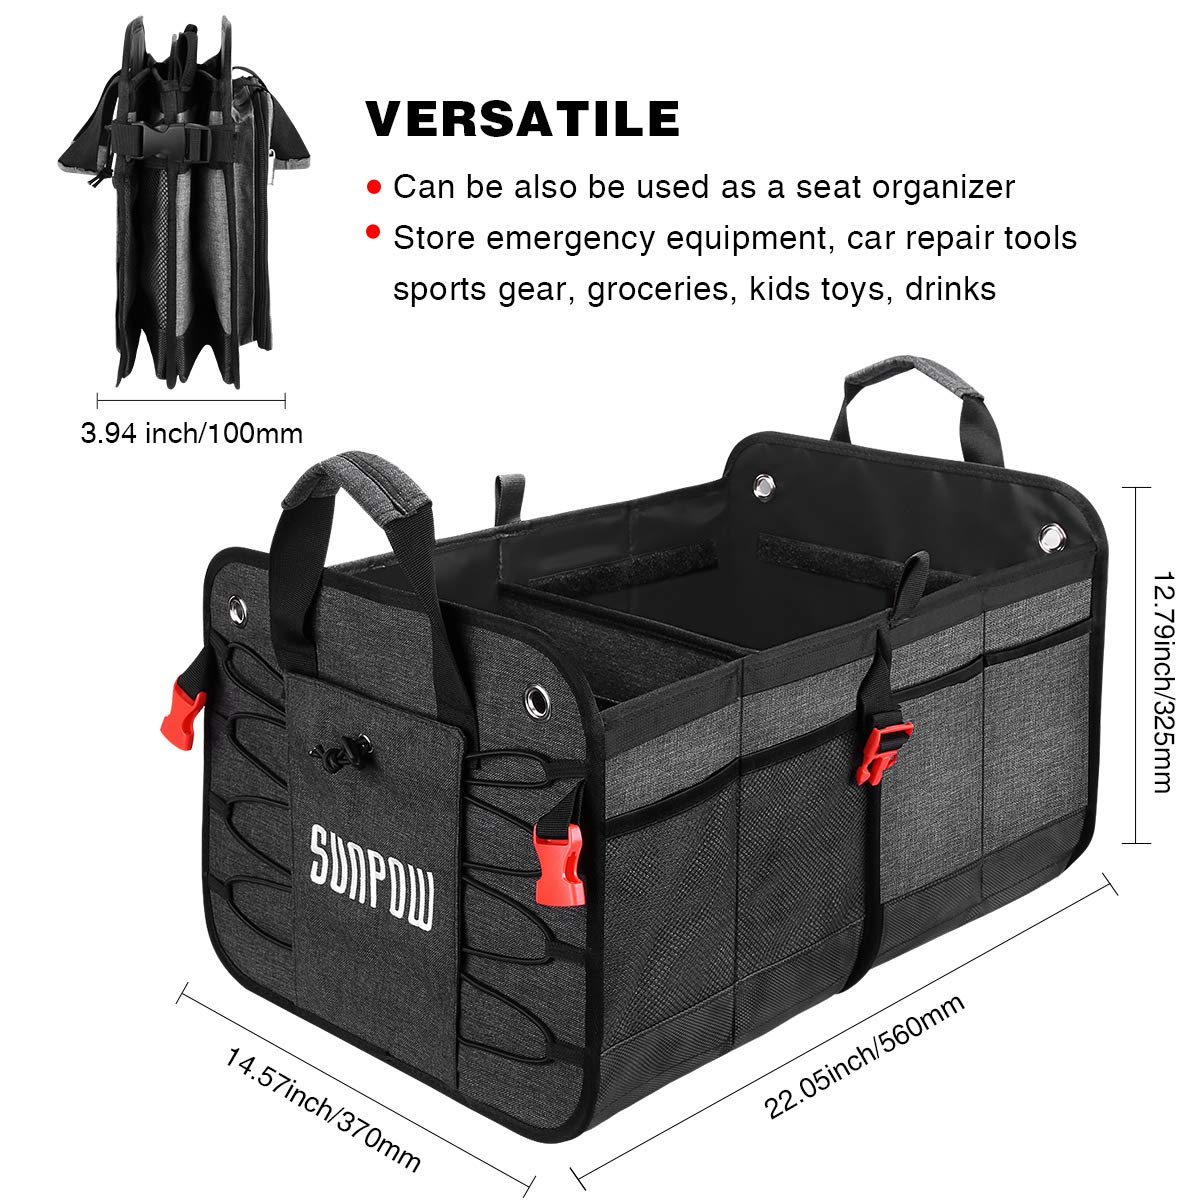 AUTOWN Car Trunk Organizer Non-Slip Bottom Strips to Prevent Sliding Collapsible Portable Multi Compartments Cargo Storage with Straps Gray